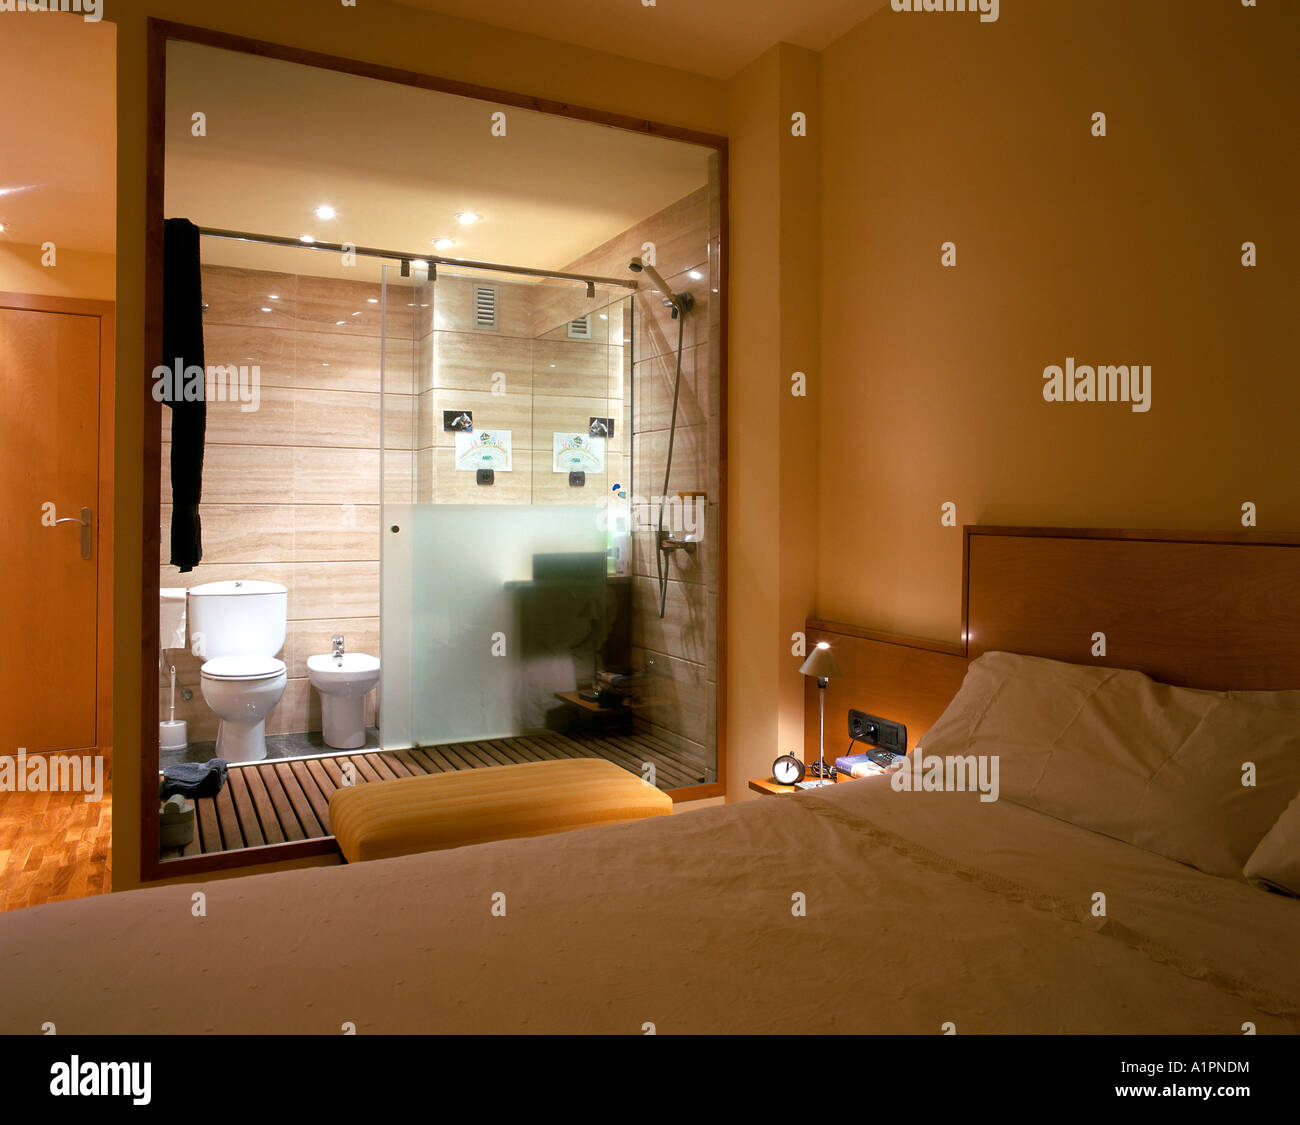 View Of A Bedroom With An Attached Bathroom